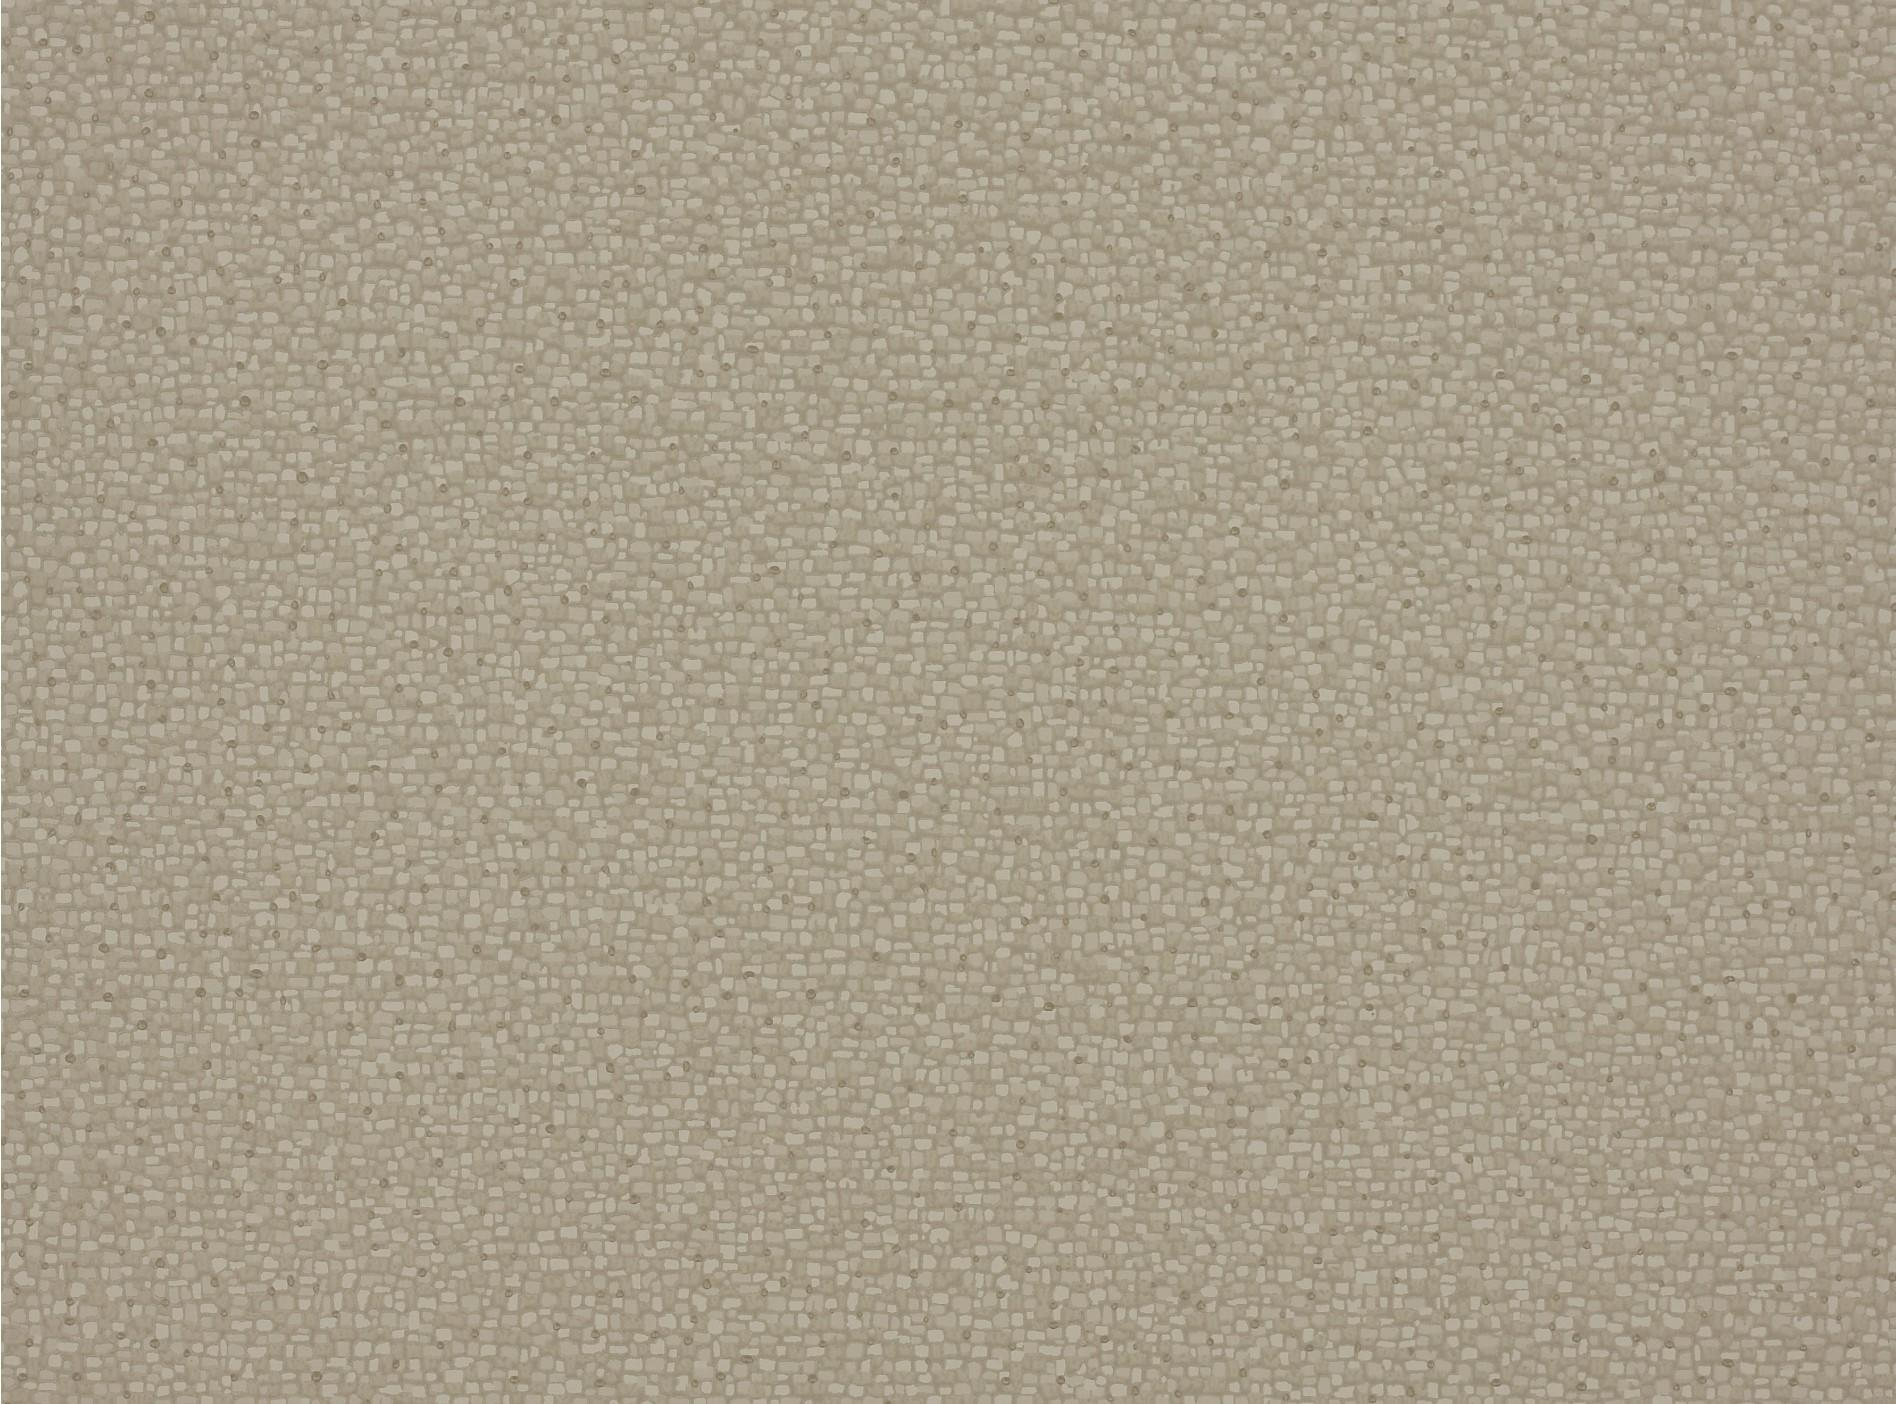 Romo Folia Wallpaper Romo Folia Collection Boucle